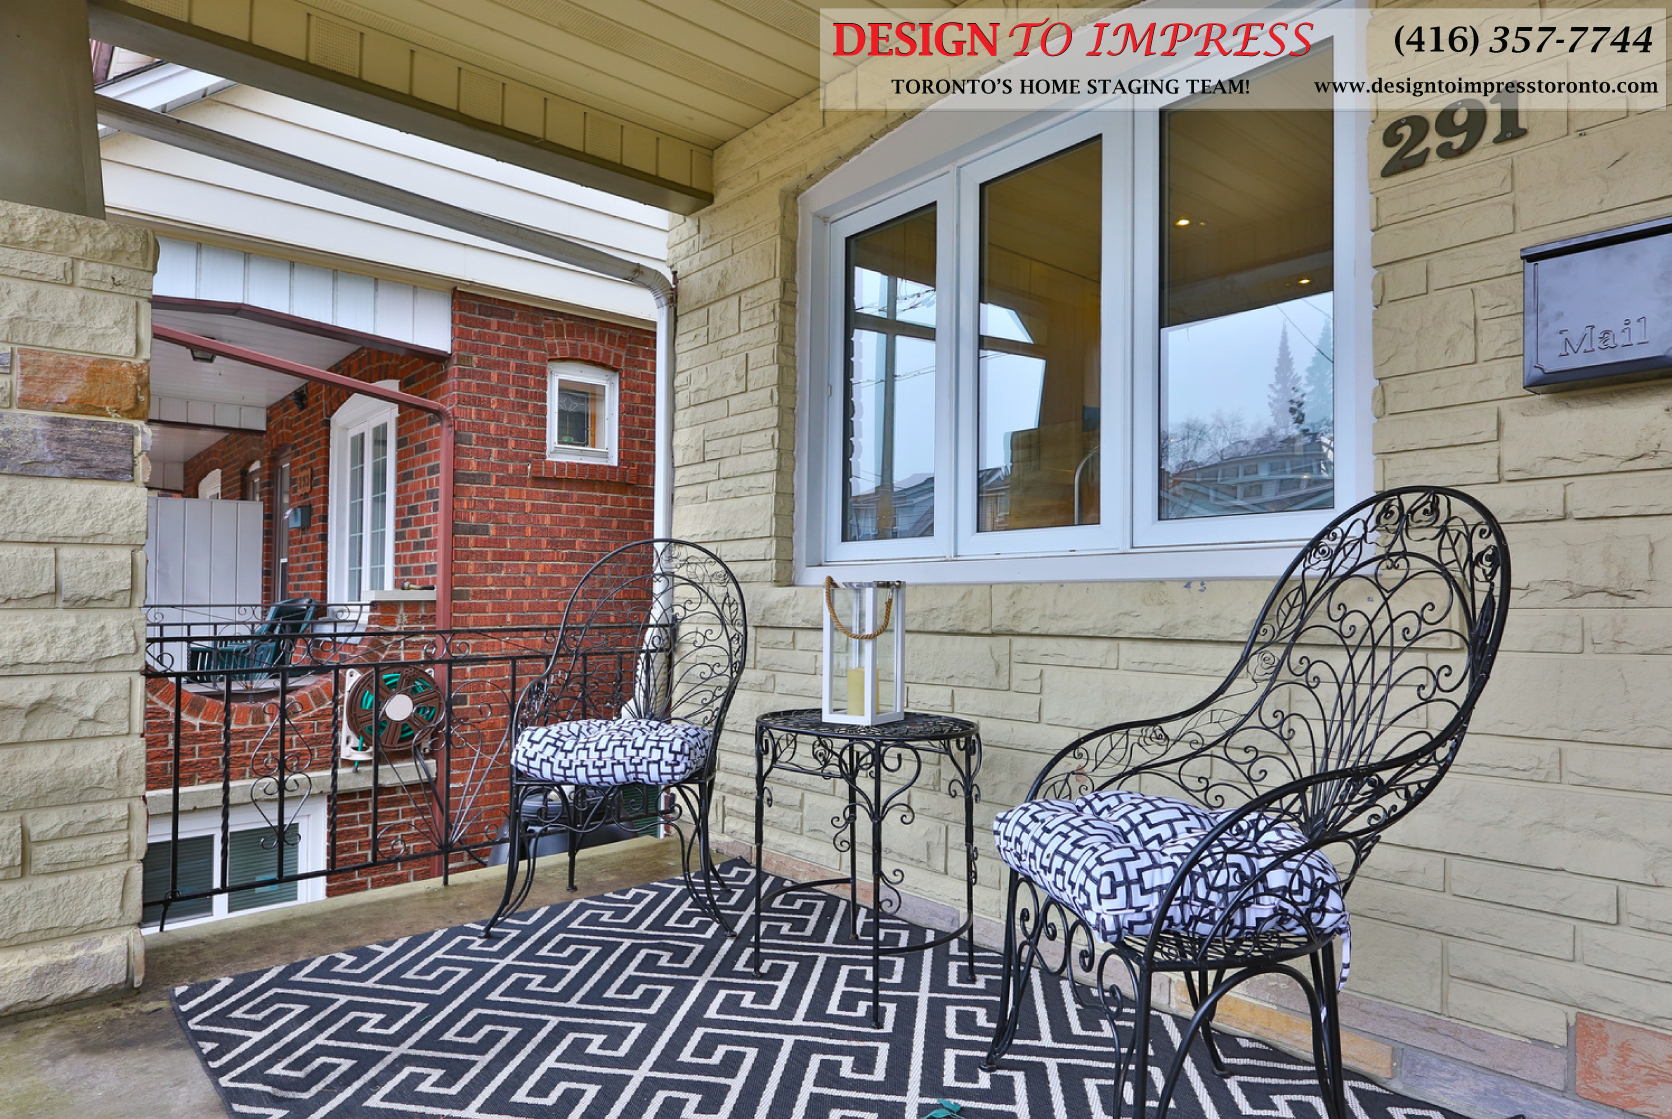 Front Porch, 291 Springdale, Toronto Home Staging